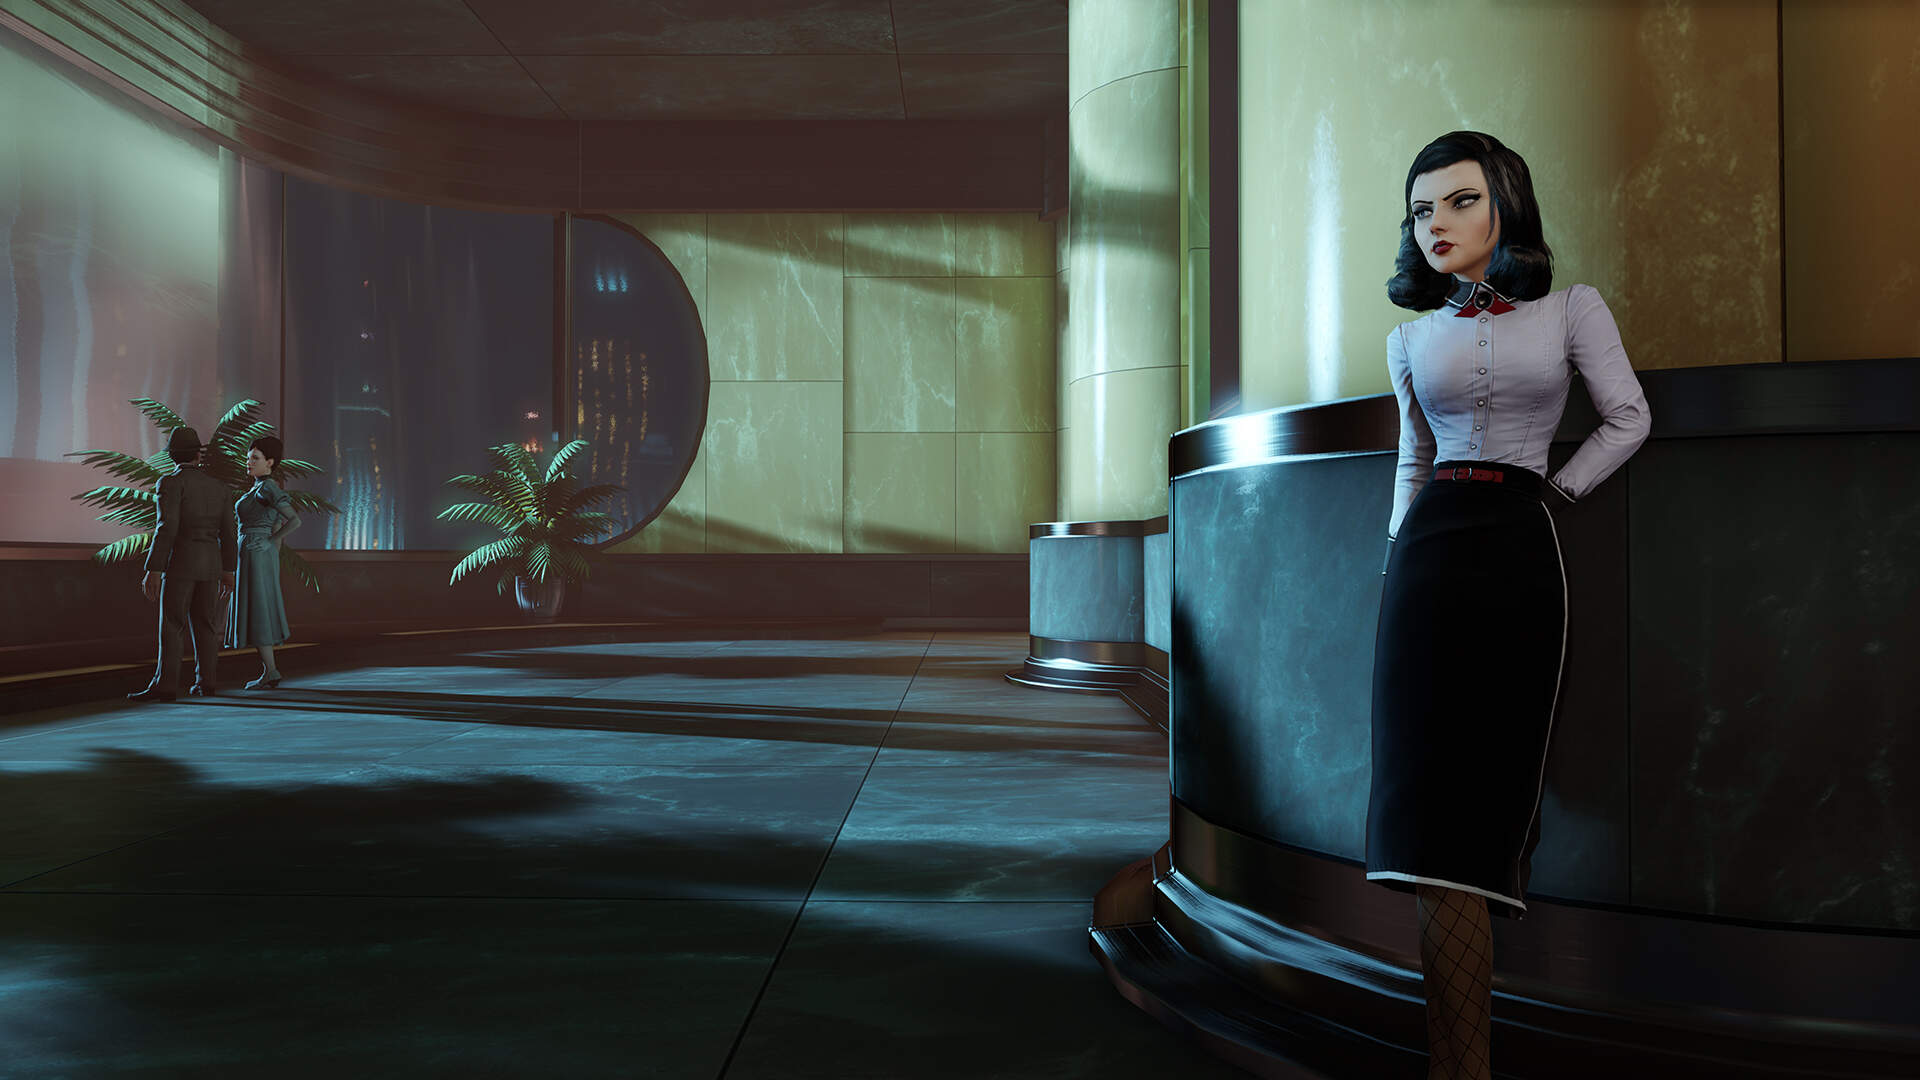 Sink or Swim? BioShock Infinite: Burial at Sea - Episode 1 Review